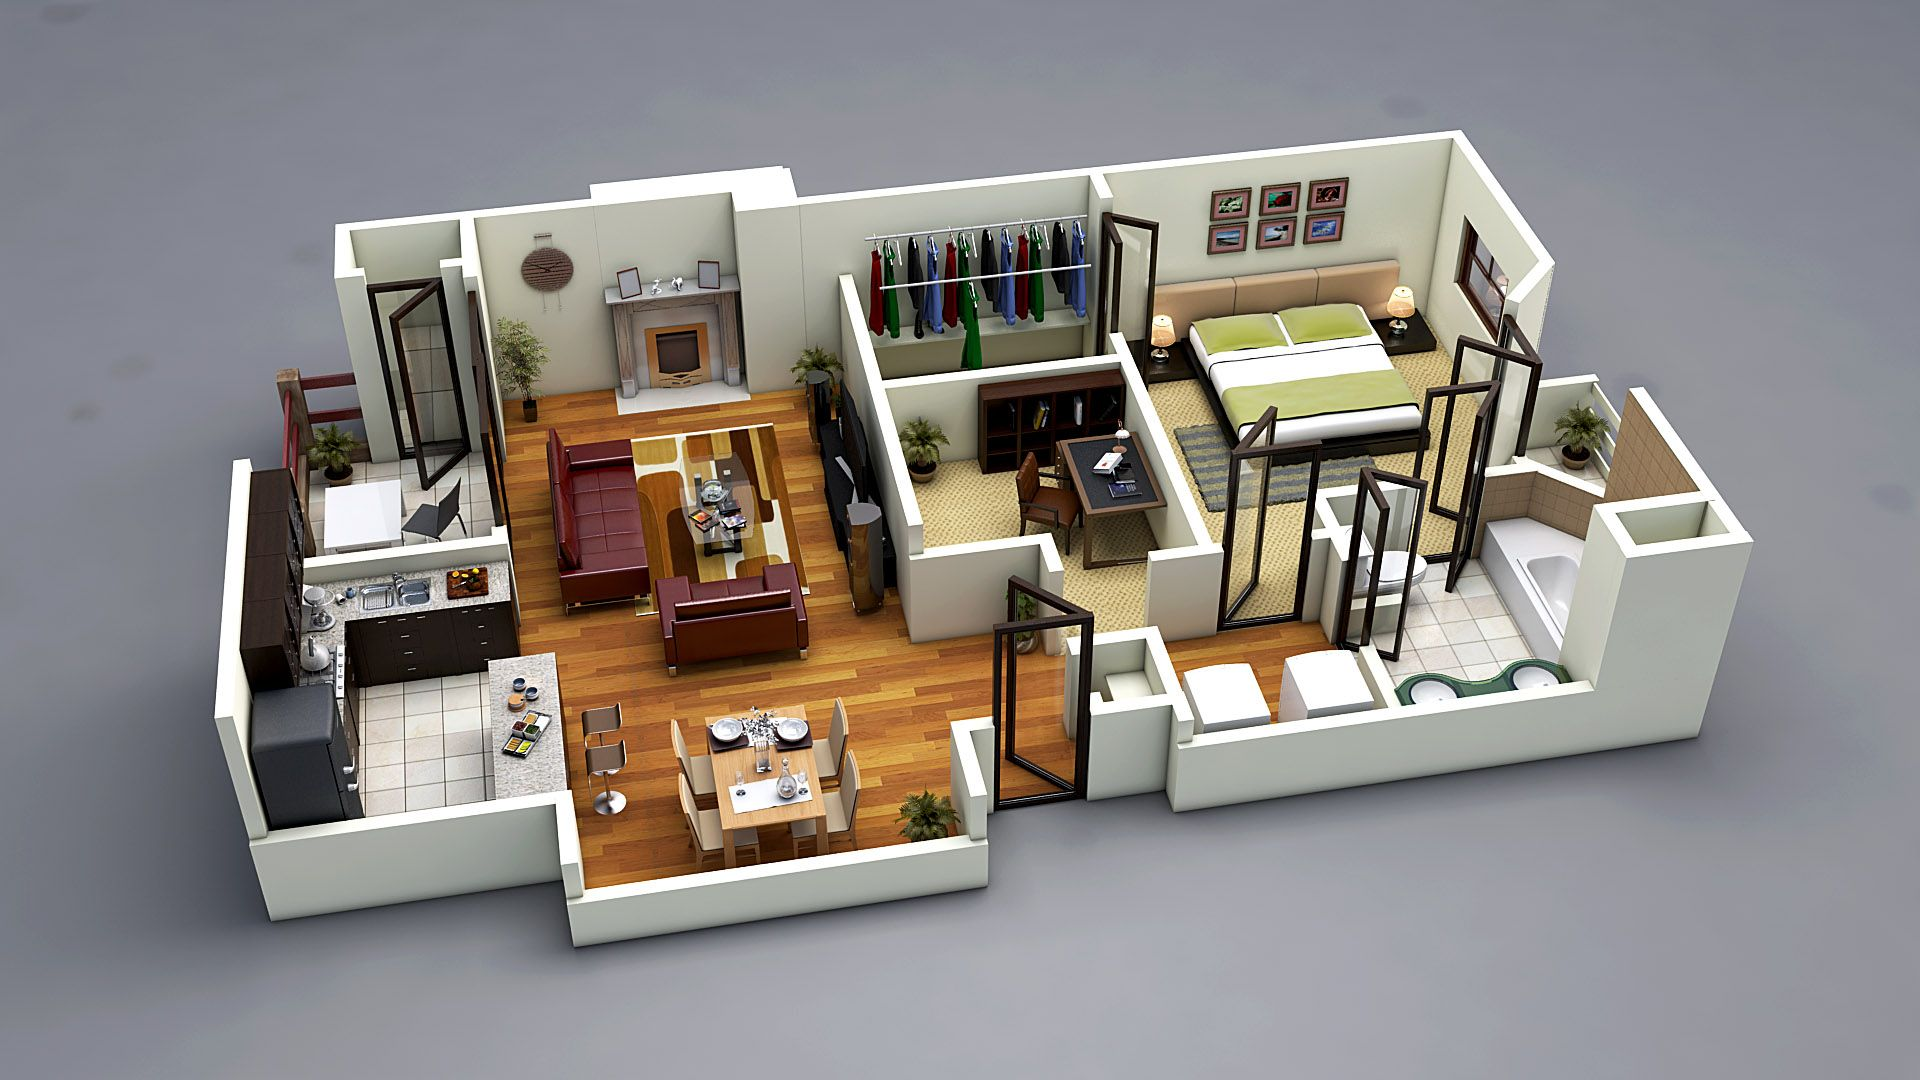 Photo realistic 3d floor plan 3ds max vray www for 3ds max design